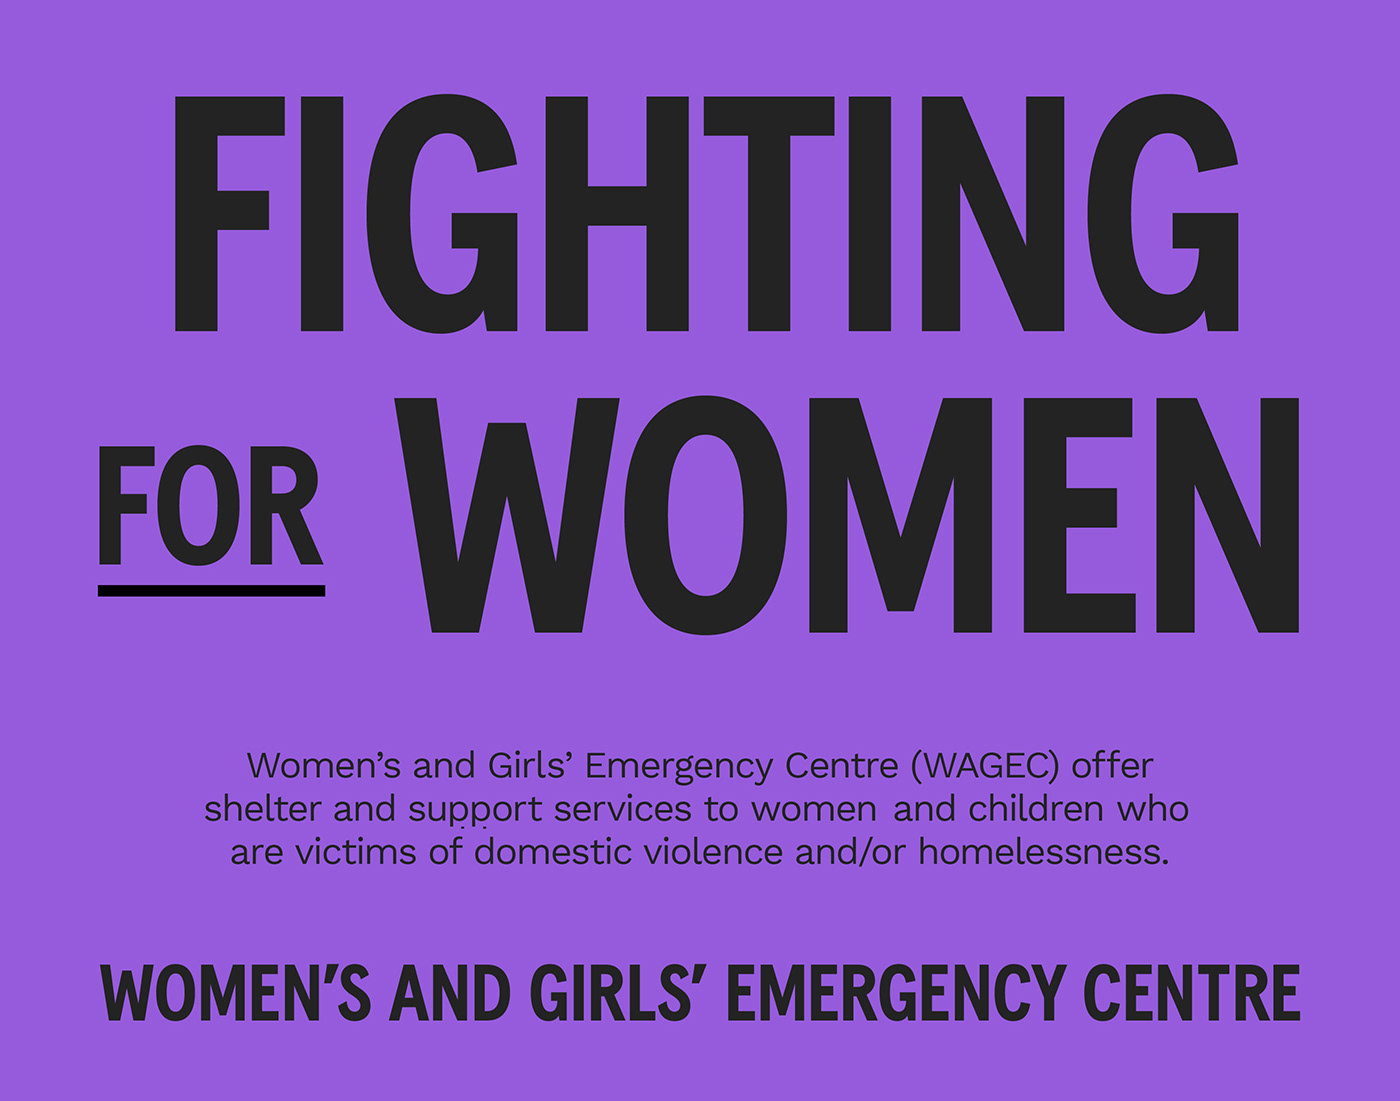 women woman charity purpose homeless domestic violence shelter womans rights feminism